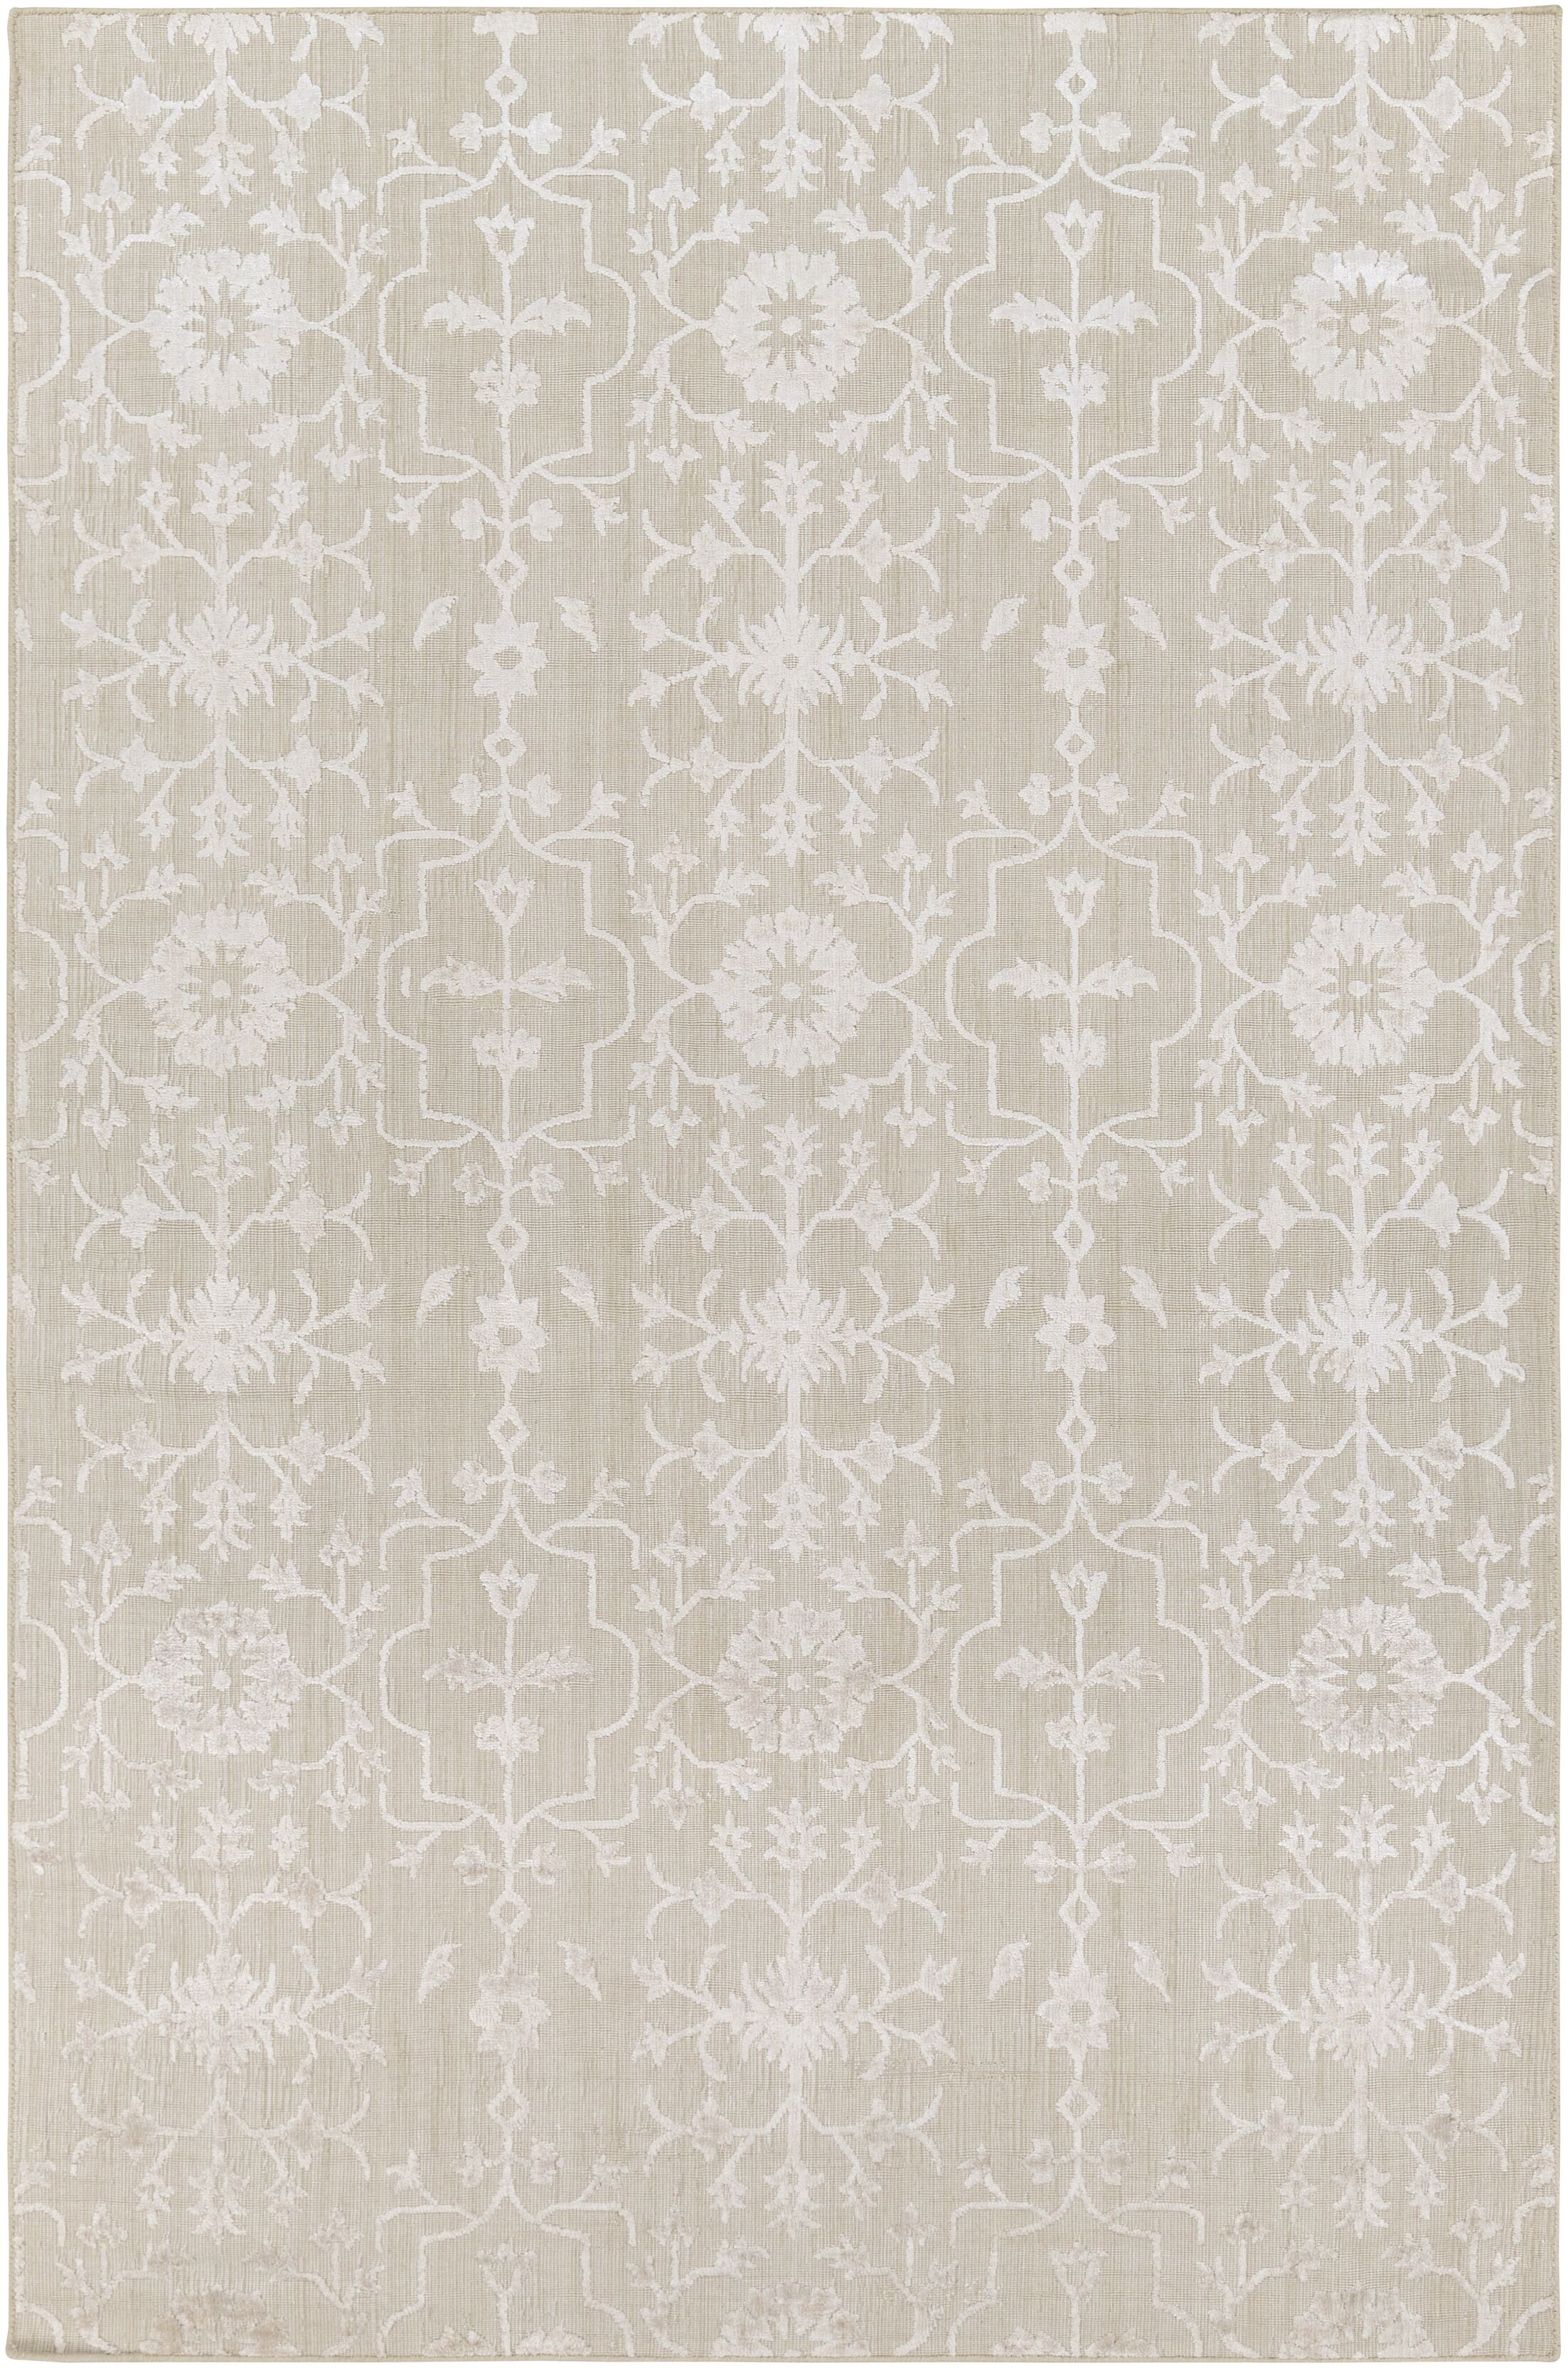 Poirier Hand-Knotted Khaki/White Area Rug Rug Size: Rectangle 6' x 9'